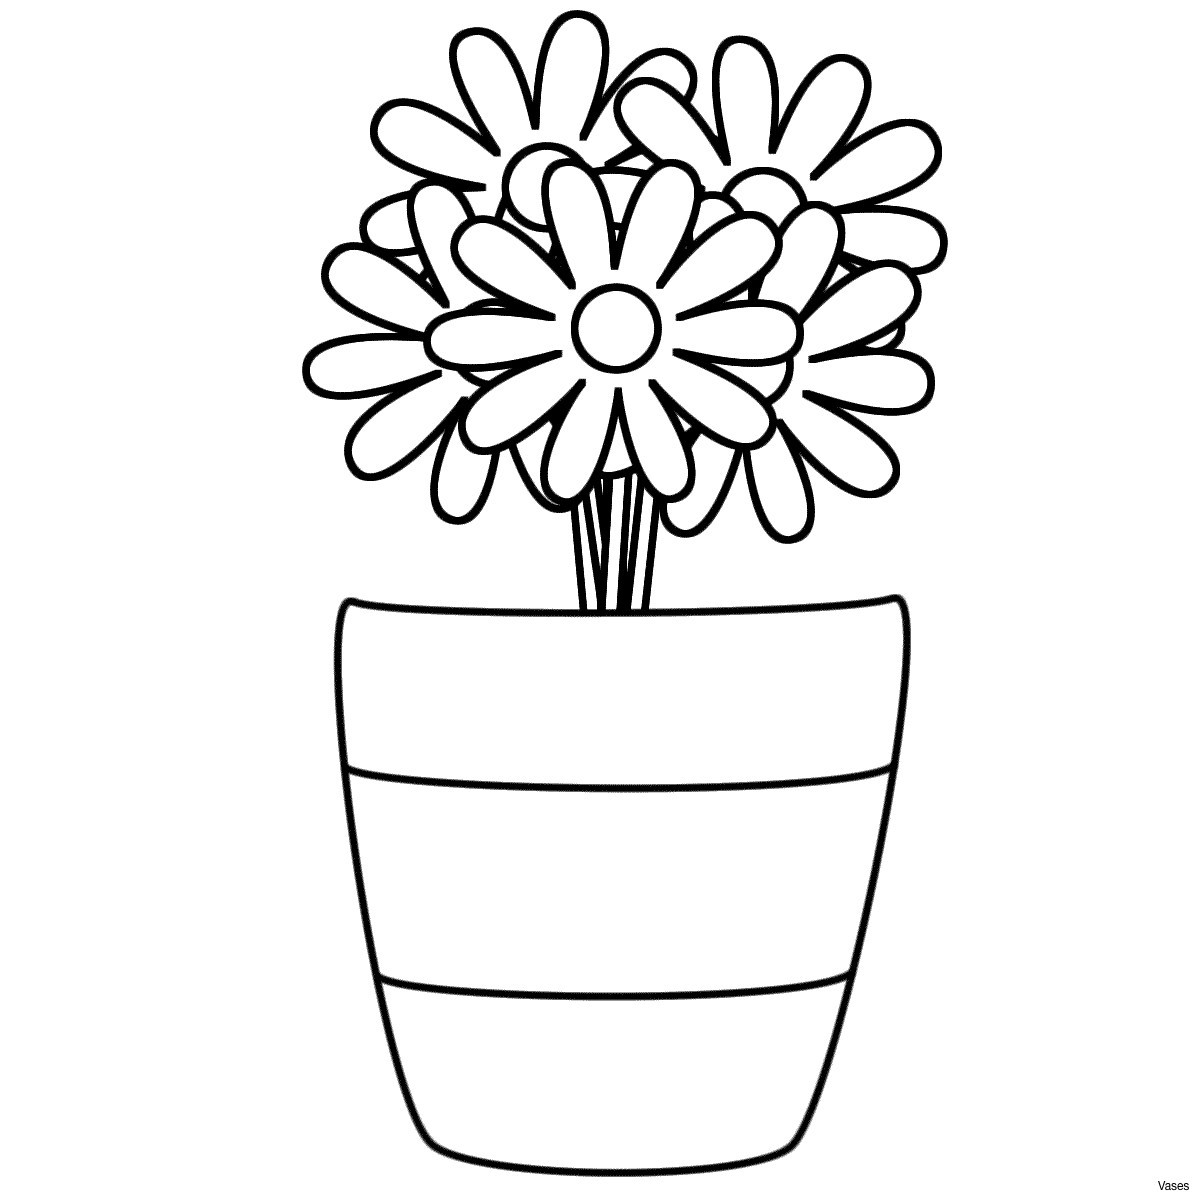 flowers in a vase 1866 of care bears coloring pages best of vases flower vase coloring page for care bears coloring pages best of vases flower vase coloring page pages flowers in a top